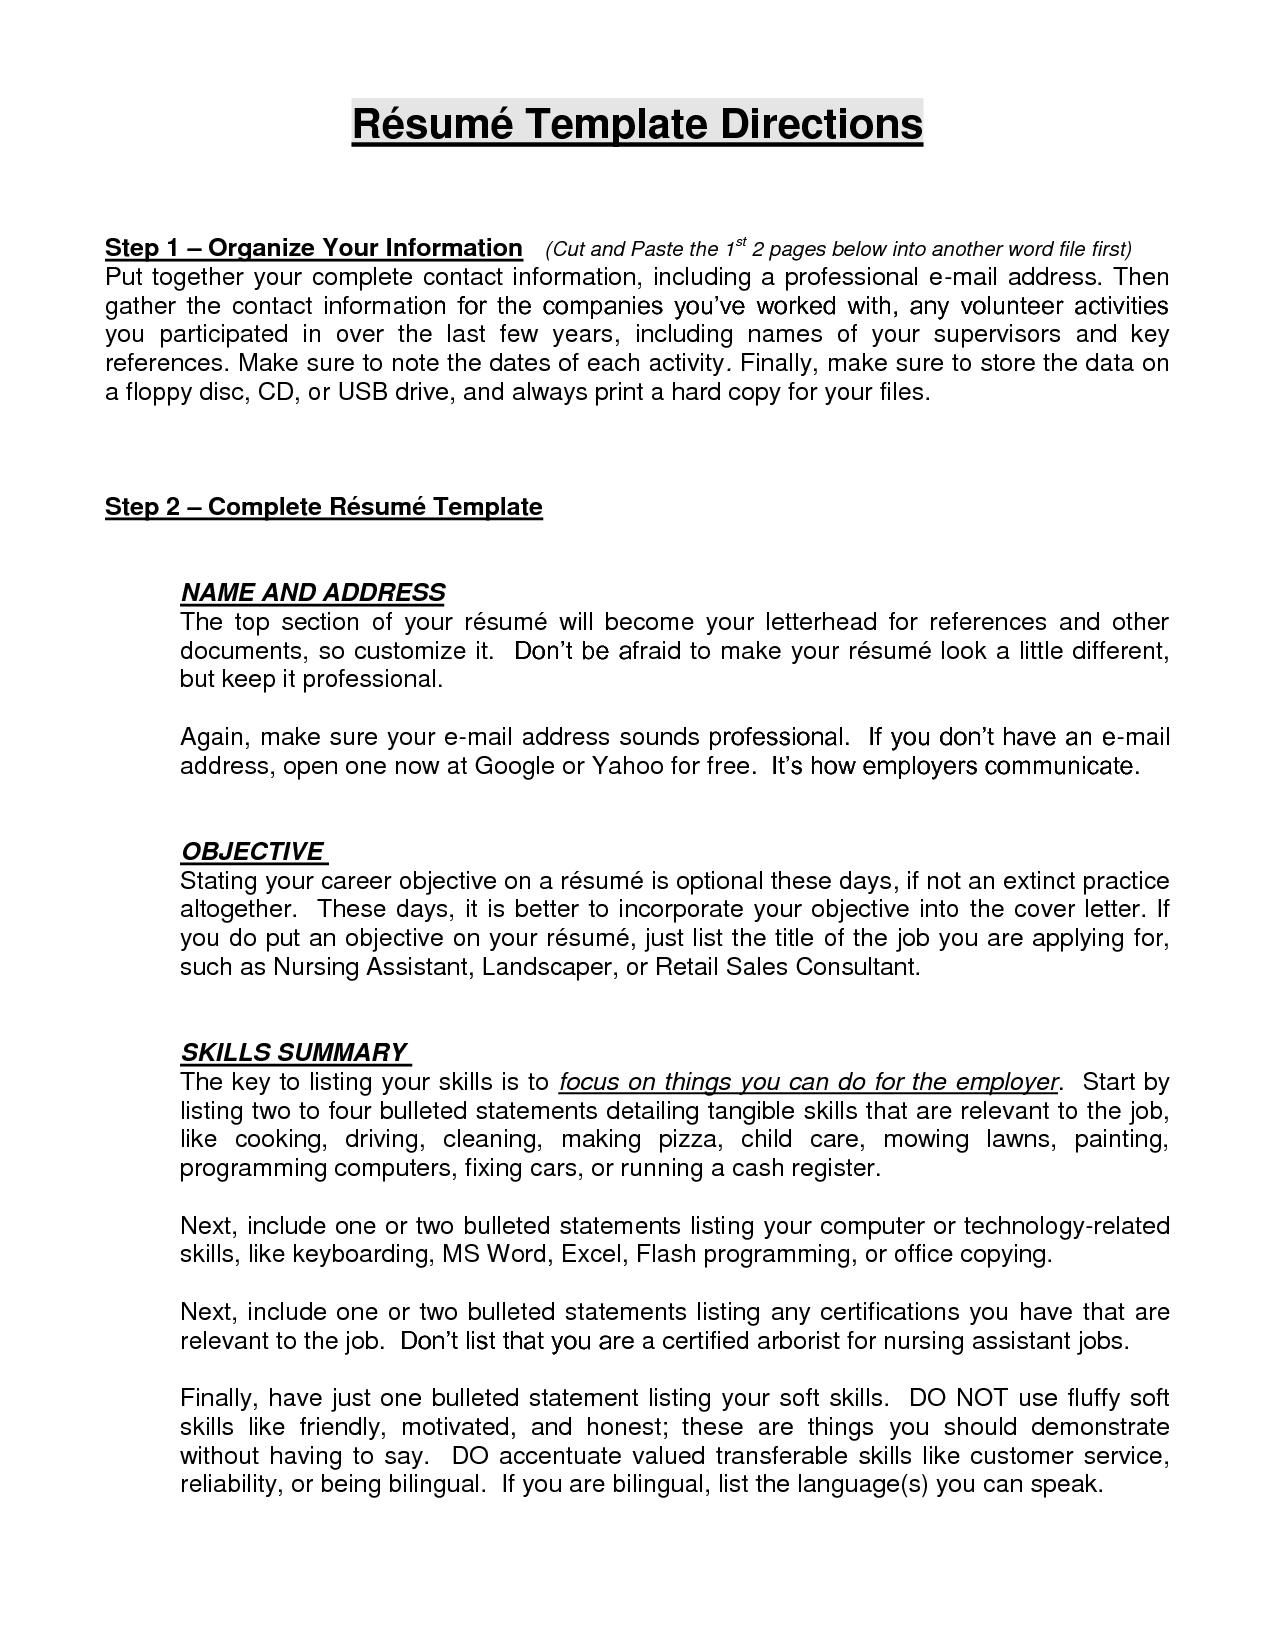 Resume Objective Statements Ideas Good Objective For Resume Resume Objective Statement Resume Objective Examples